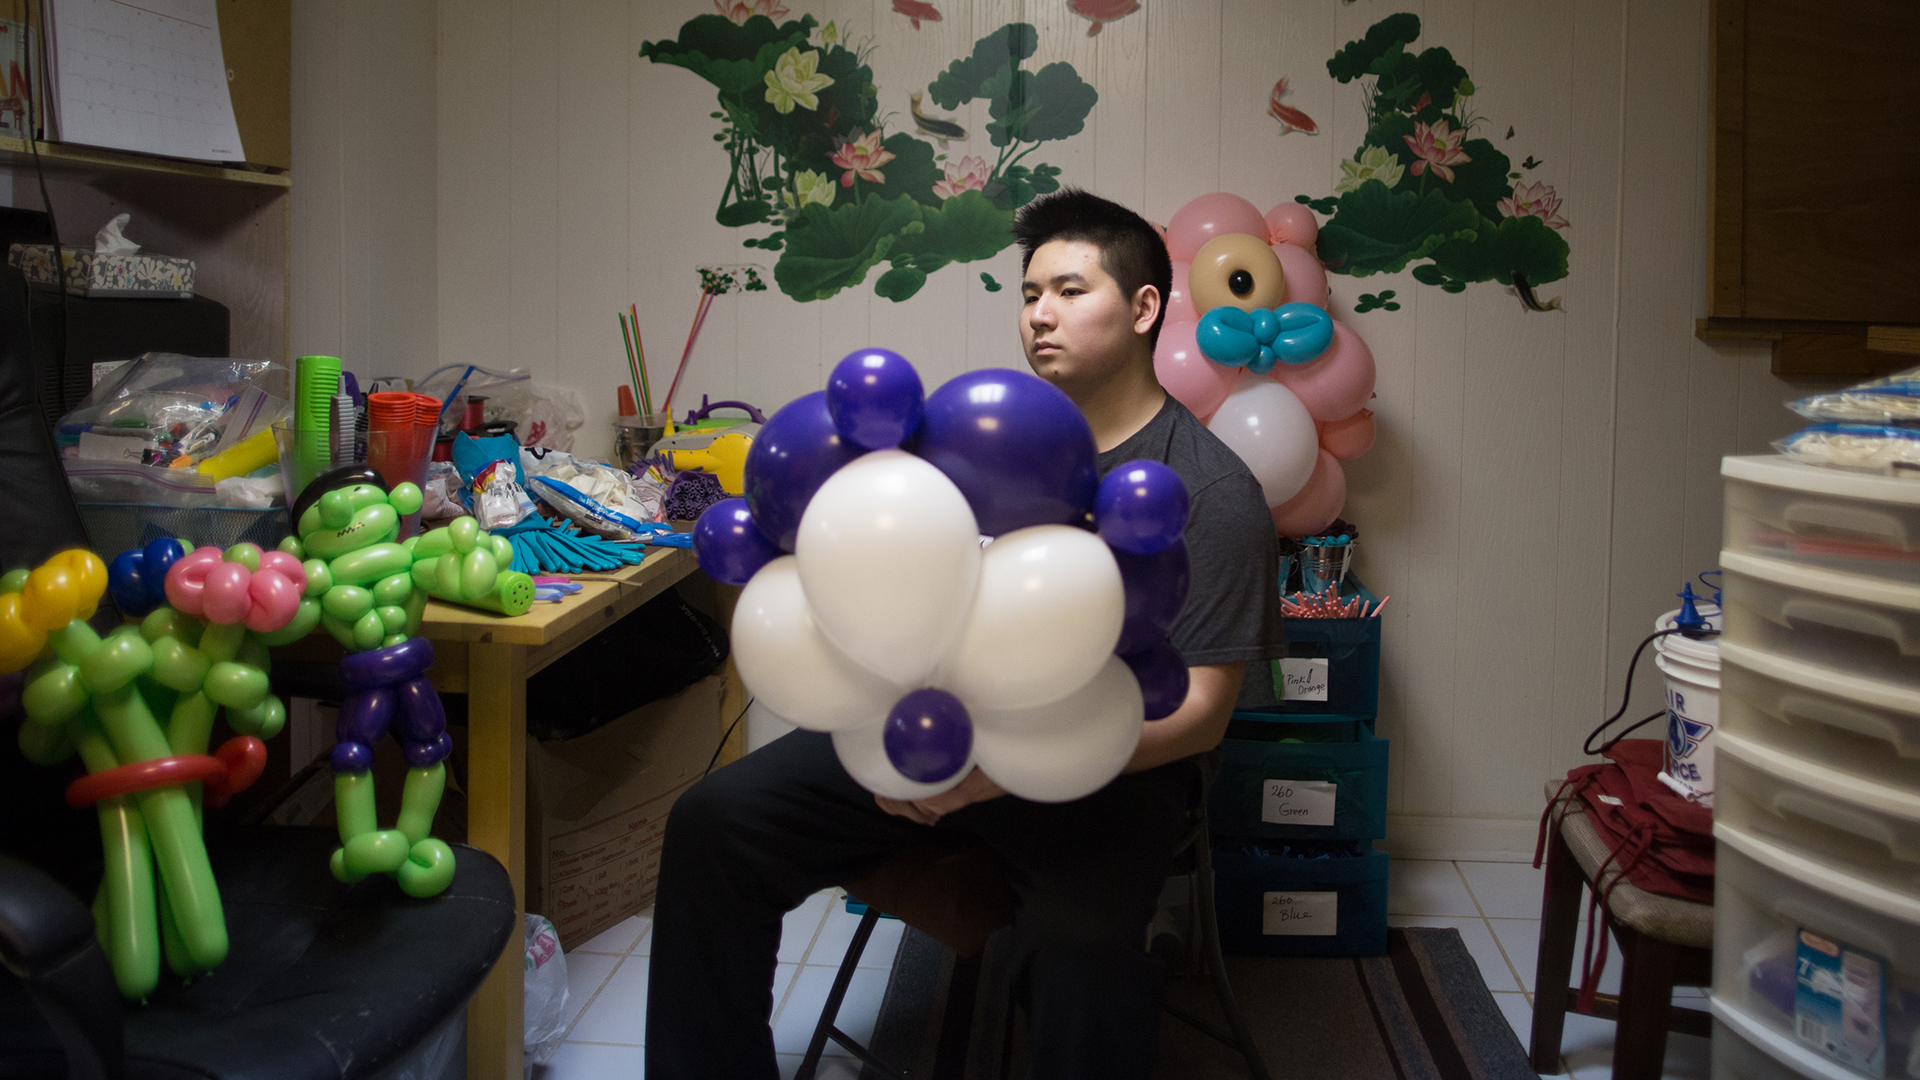 Fascination with Balloon Art Grows Into an Ausome Opportunity